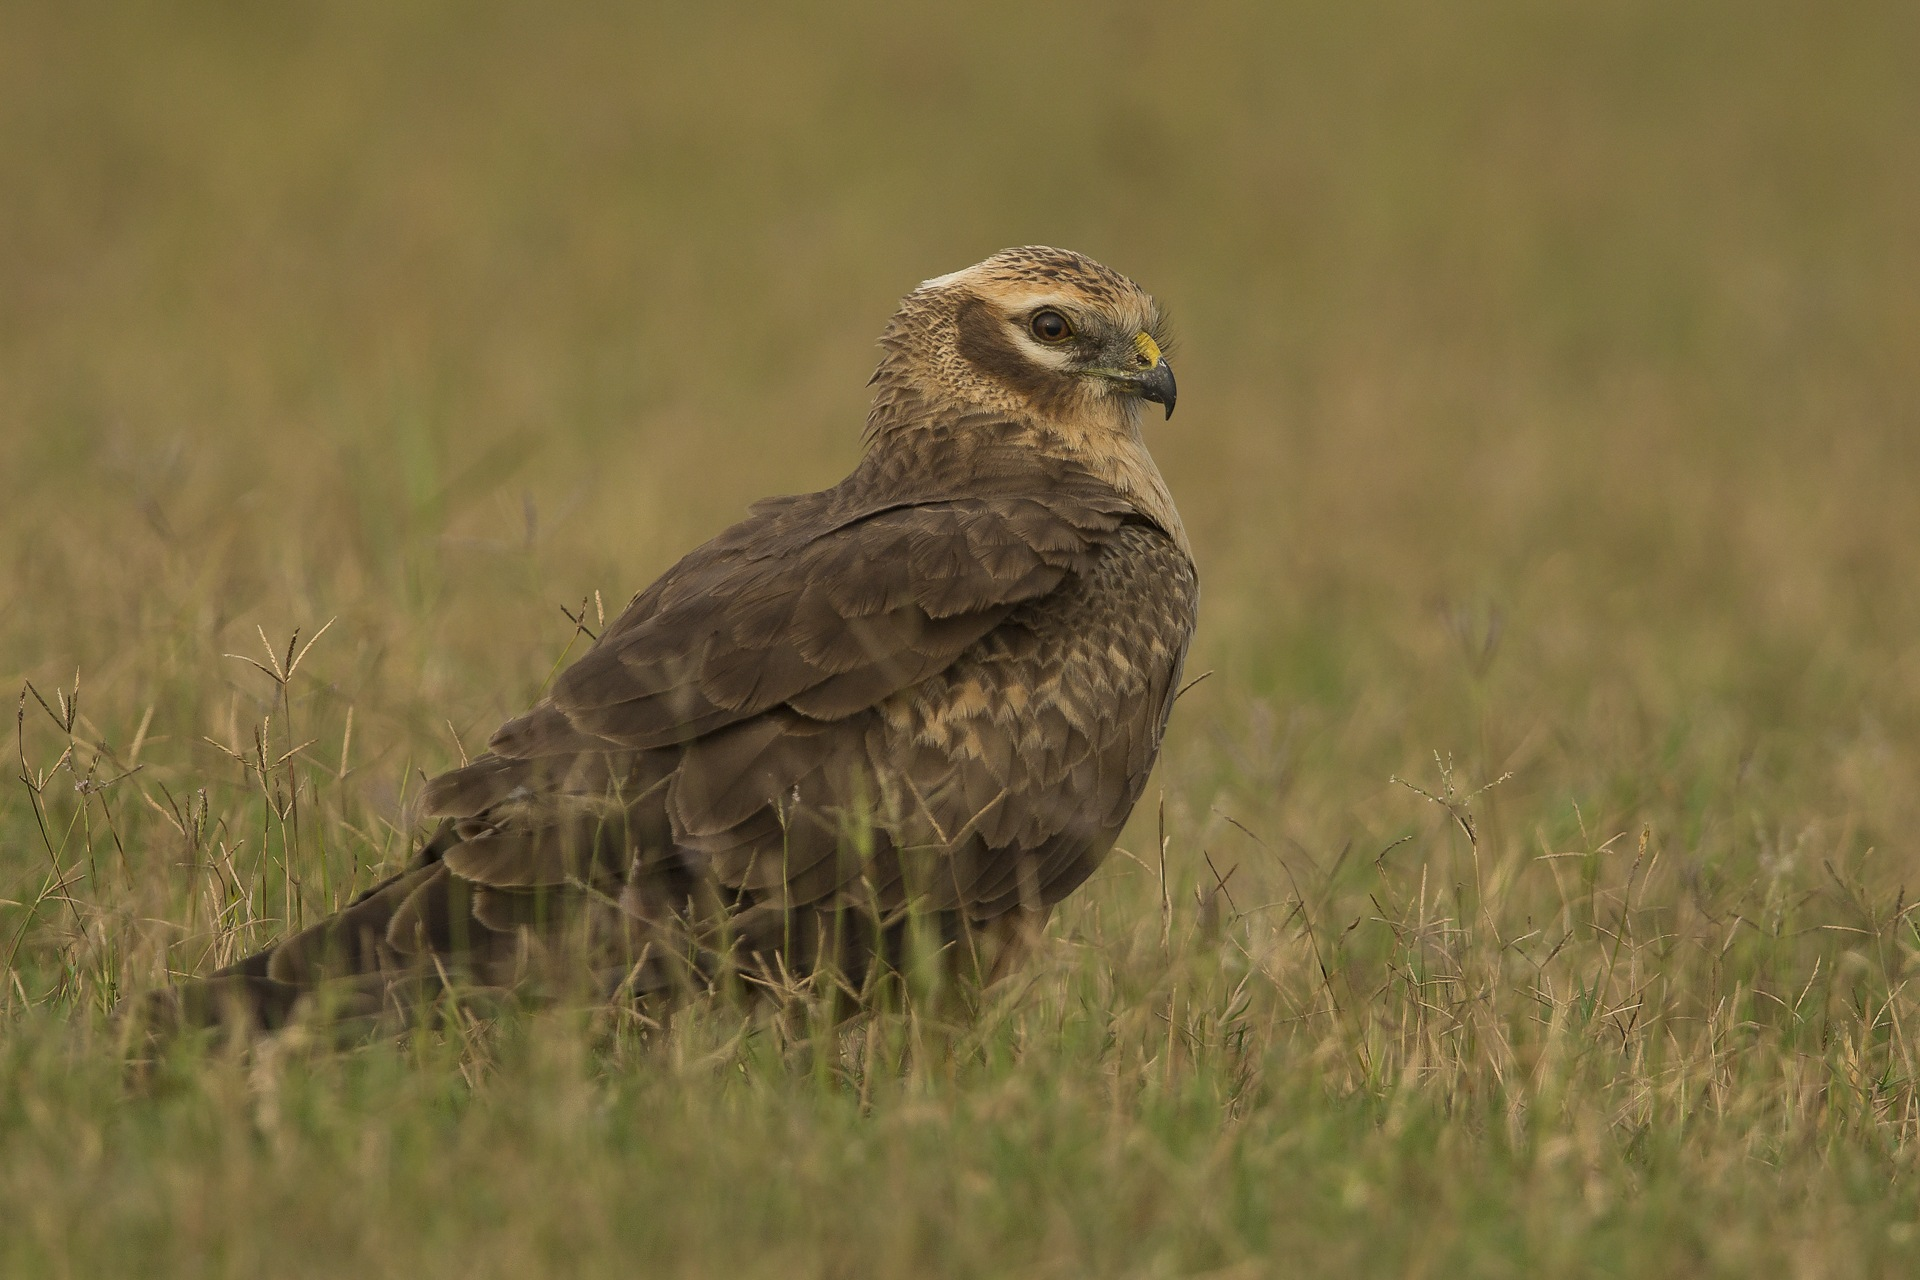 The adult female Montagu's harrier has brown upper parts and brown streaks on its underside. They are very similar in appearance to the pallid and hen harriers. Photo: Sambath Subbaiah